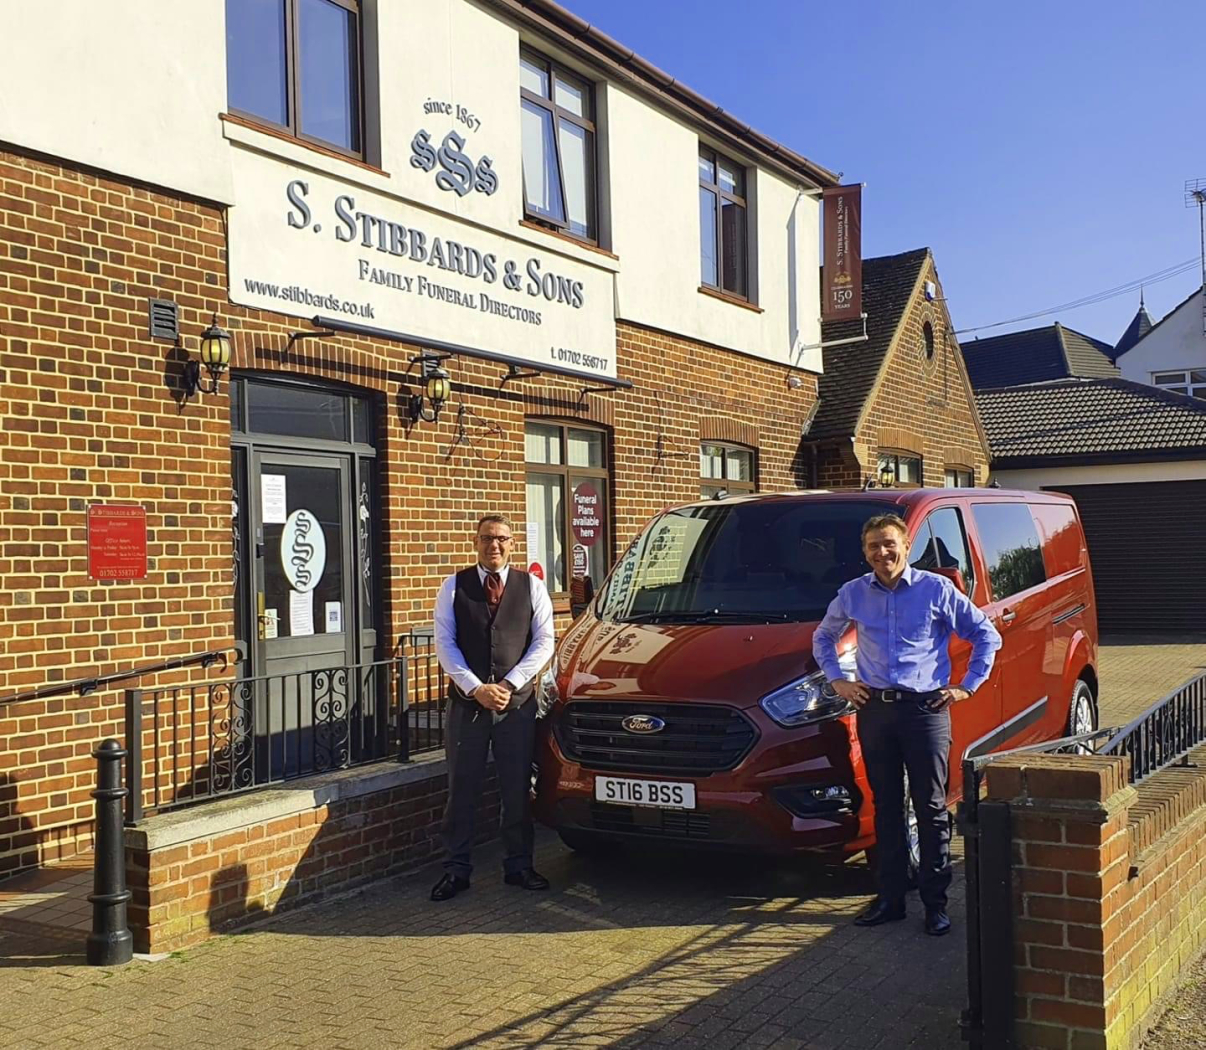 New Hybrid Vehicle Helps S. Stibbards & Sons Stay Environmentally Friendly